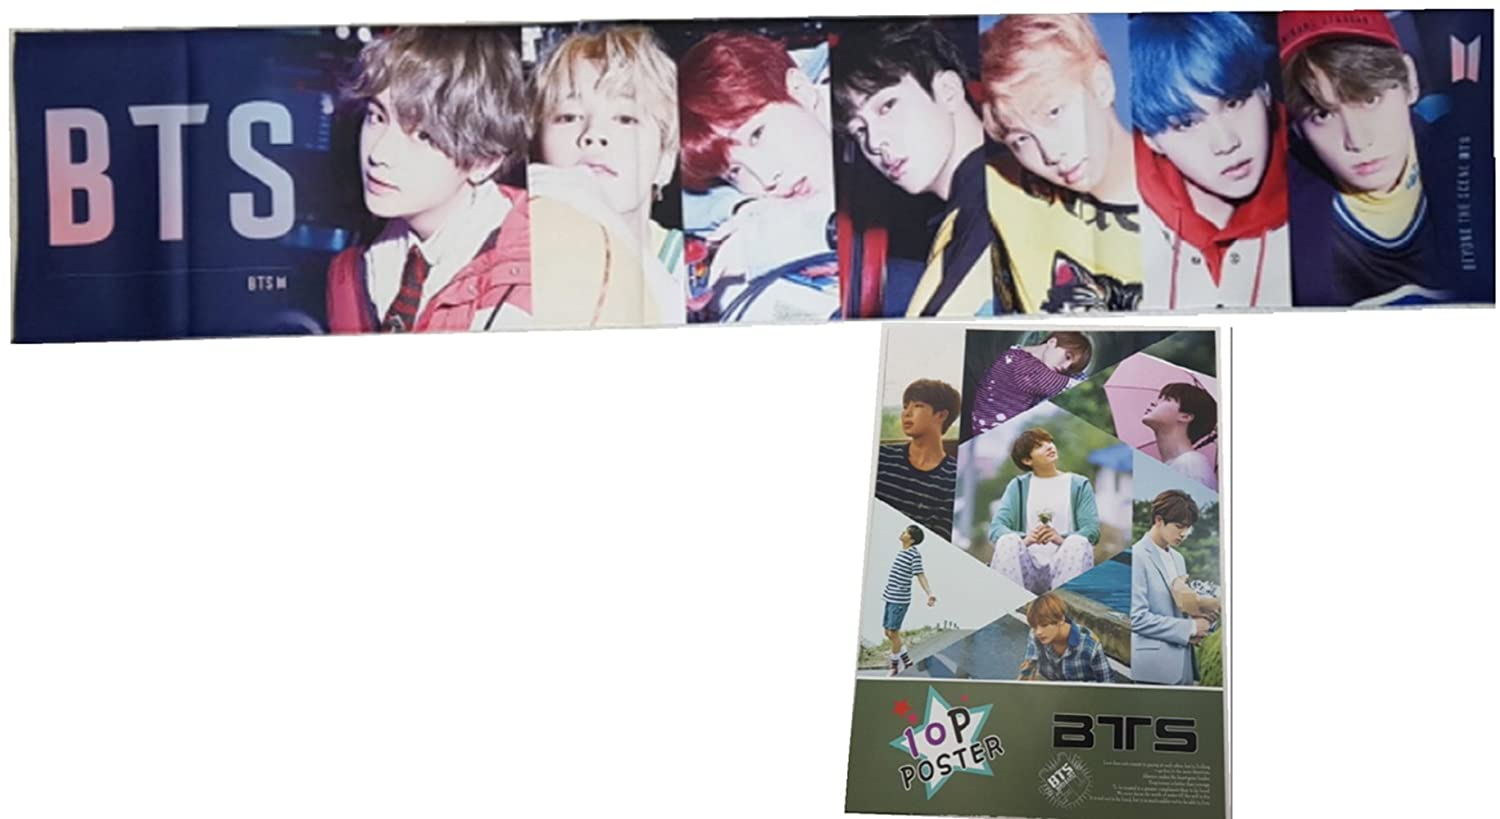 BTS K-Pop Cheering Banner, Slogan Towel with Poster Set, A4 size 10